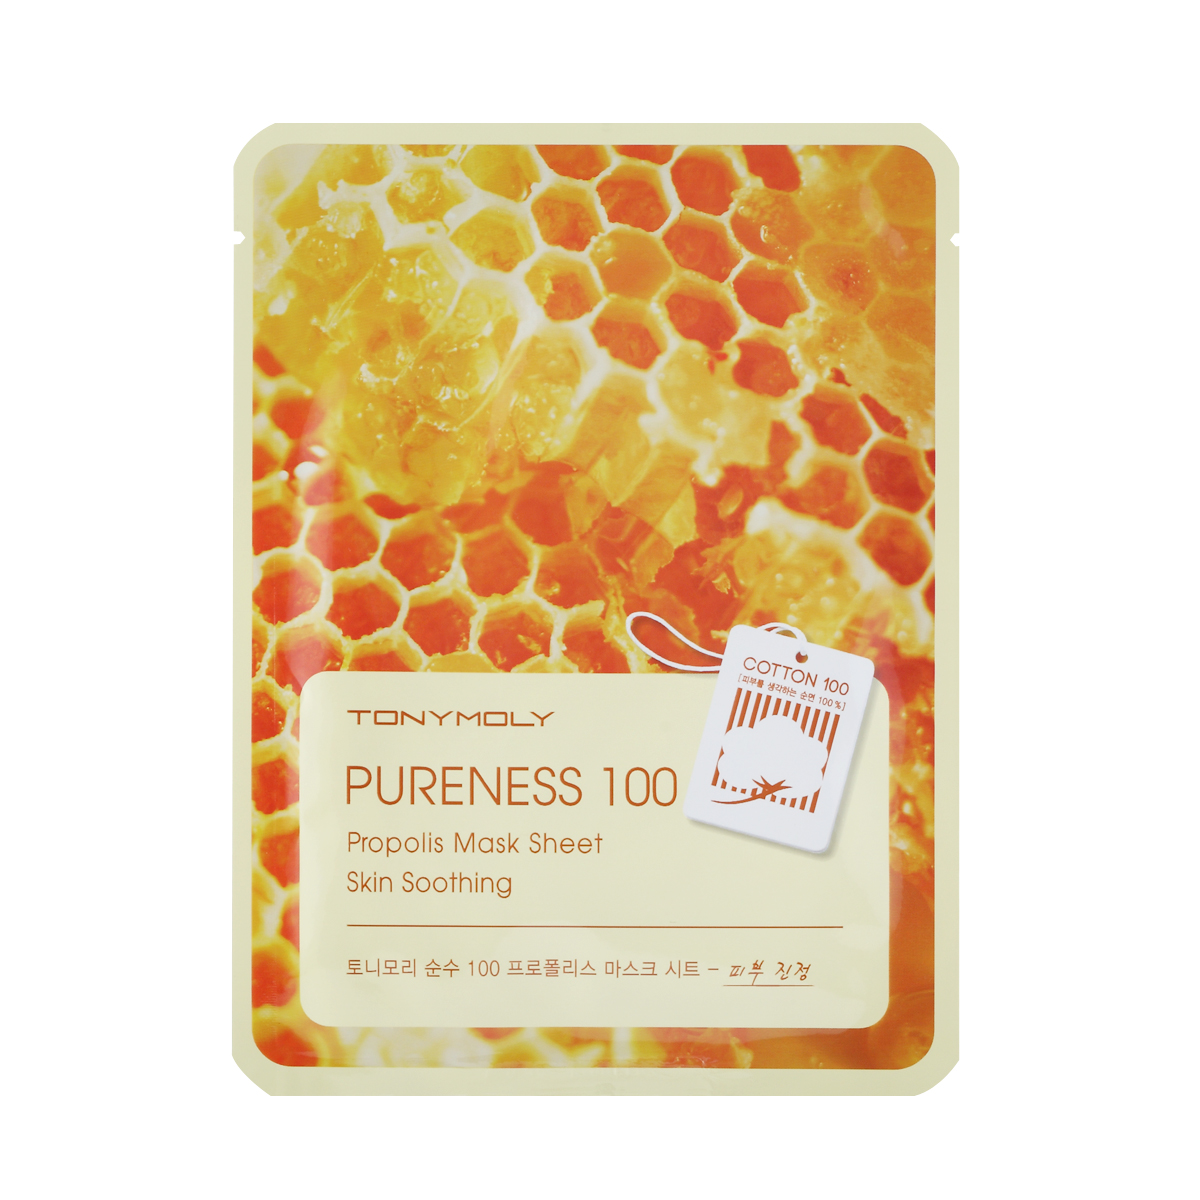 TonyMoly Тканевая маска с экстрактом прополиса Pureness 100 Propolis Mask Sheet-Skin Calming, 21 мл tony moly sheet gel mask pureness 100 pearl маска тканевая с экстрактом жемчуга 21 мл